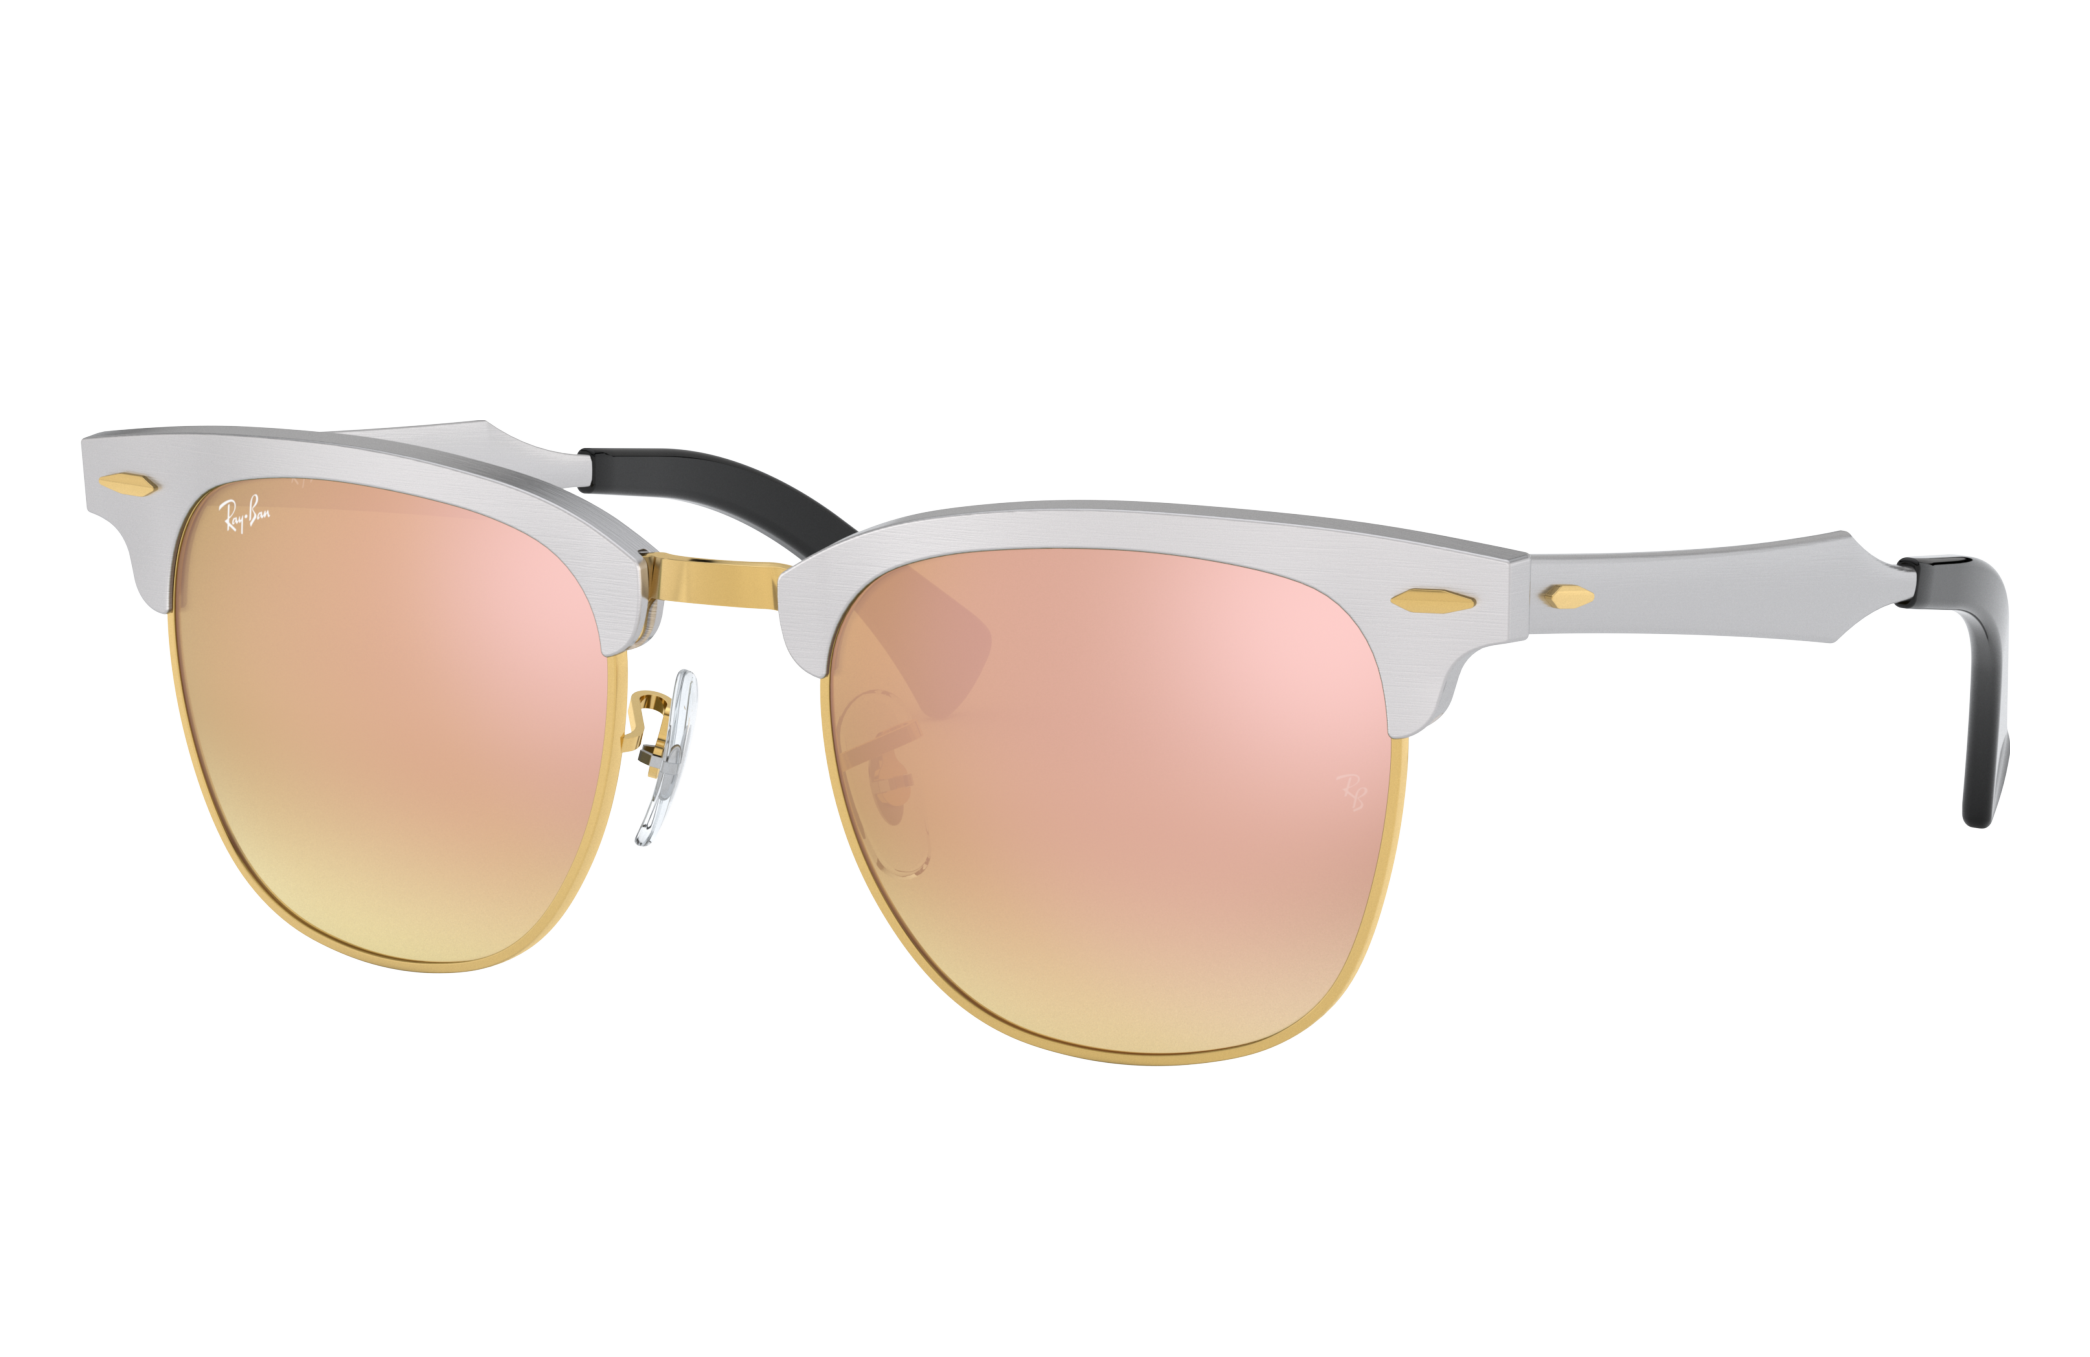 Ray-Ban Clubmaster Aluminum Flash Lenses Gradient Silver, Pink Lenses - RB3507